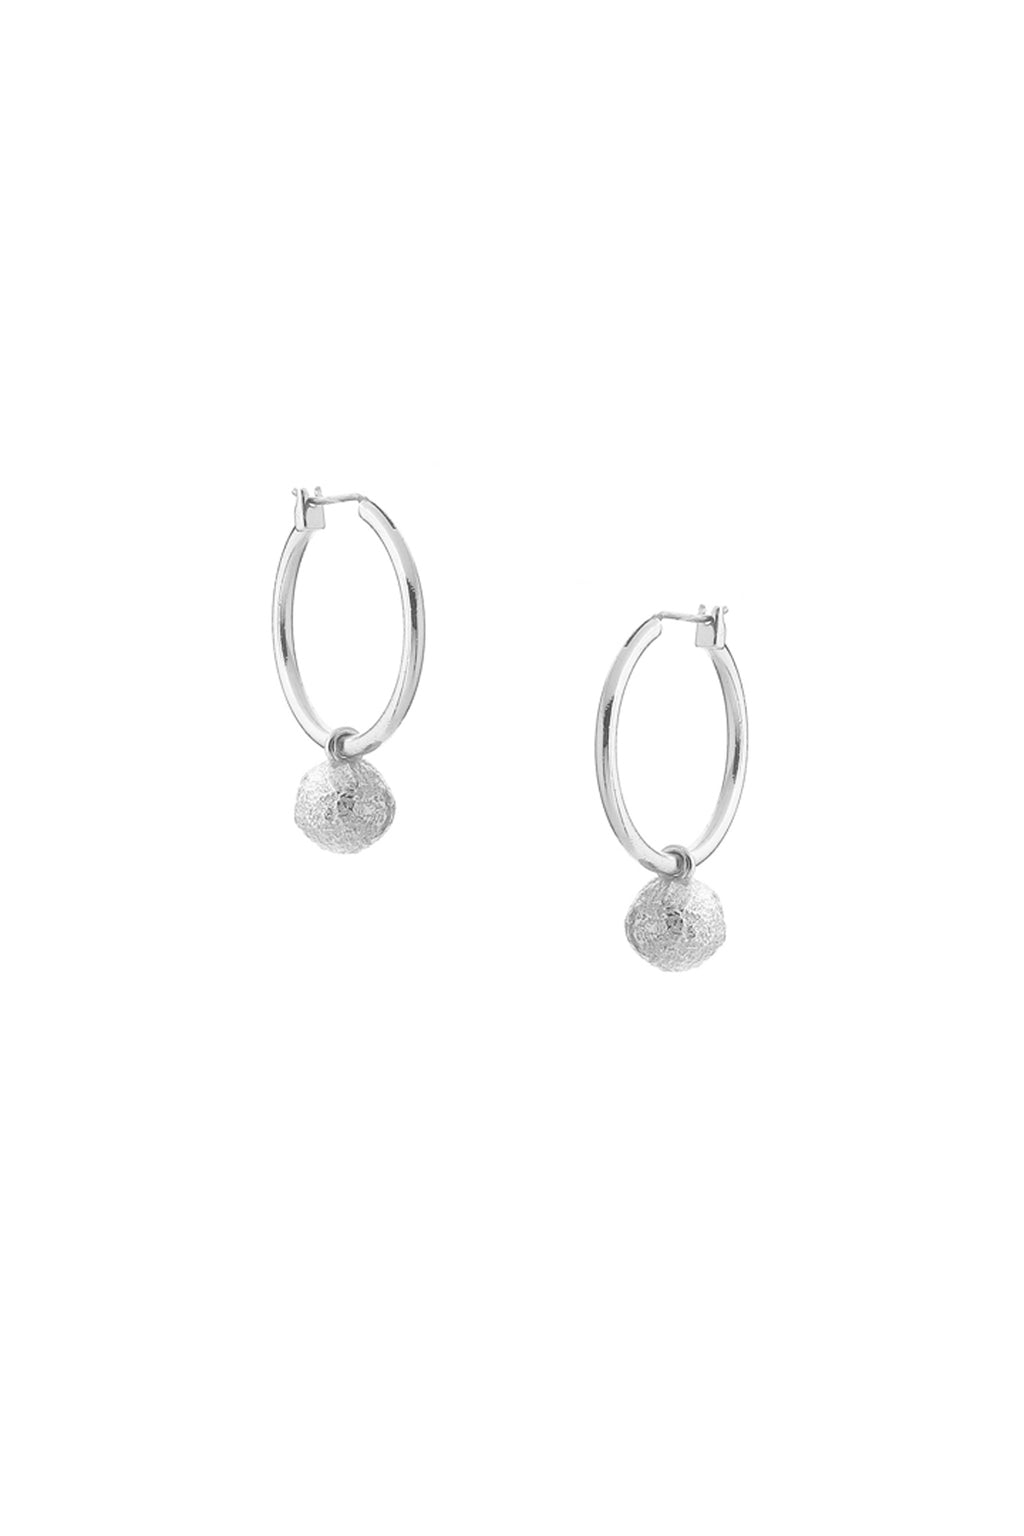 Evolve Earrings Silver